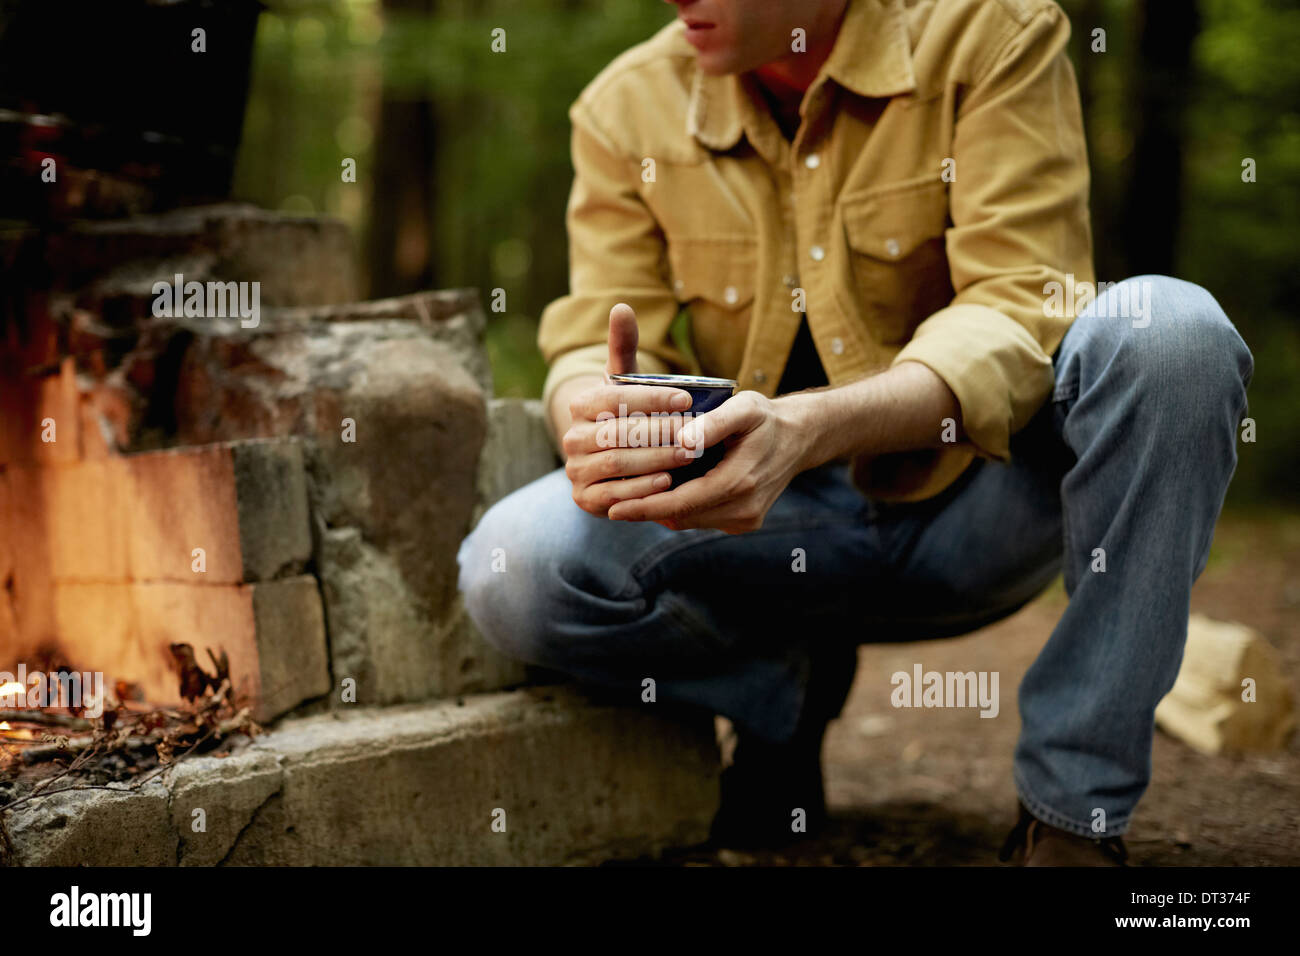 A man kneeling by a blazing camp fire - Stock Image